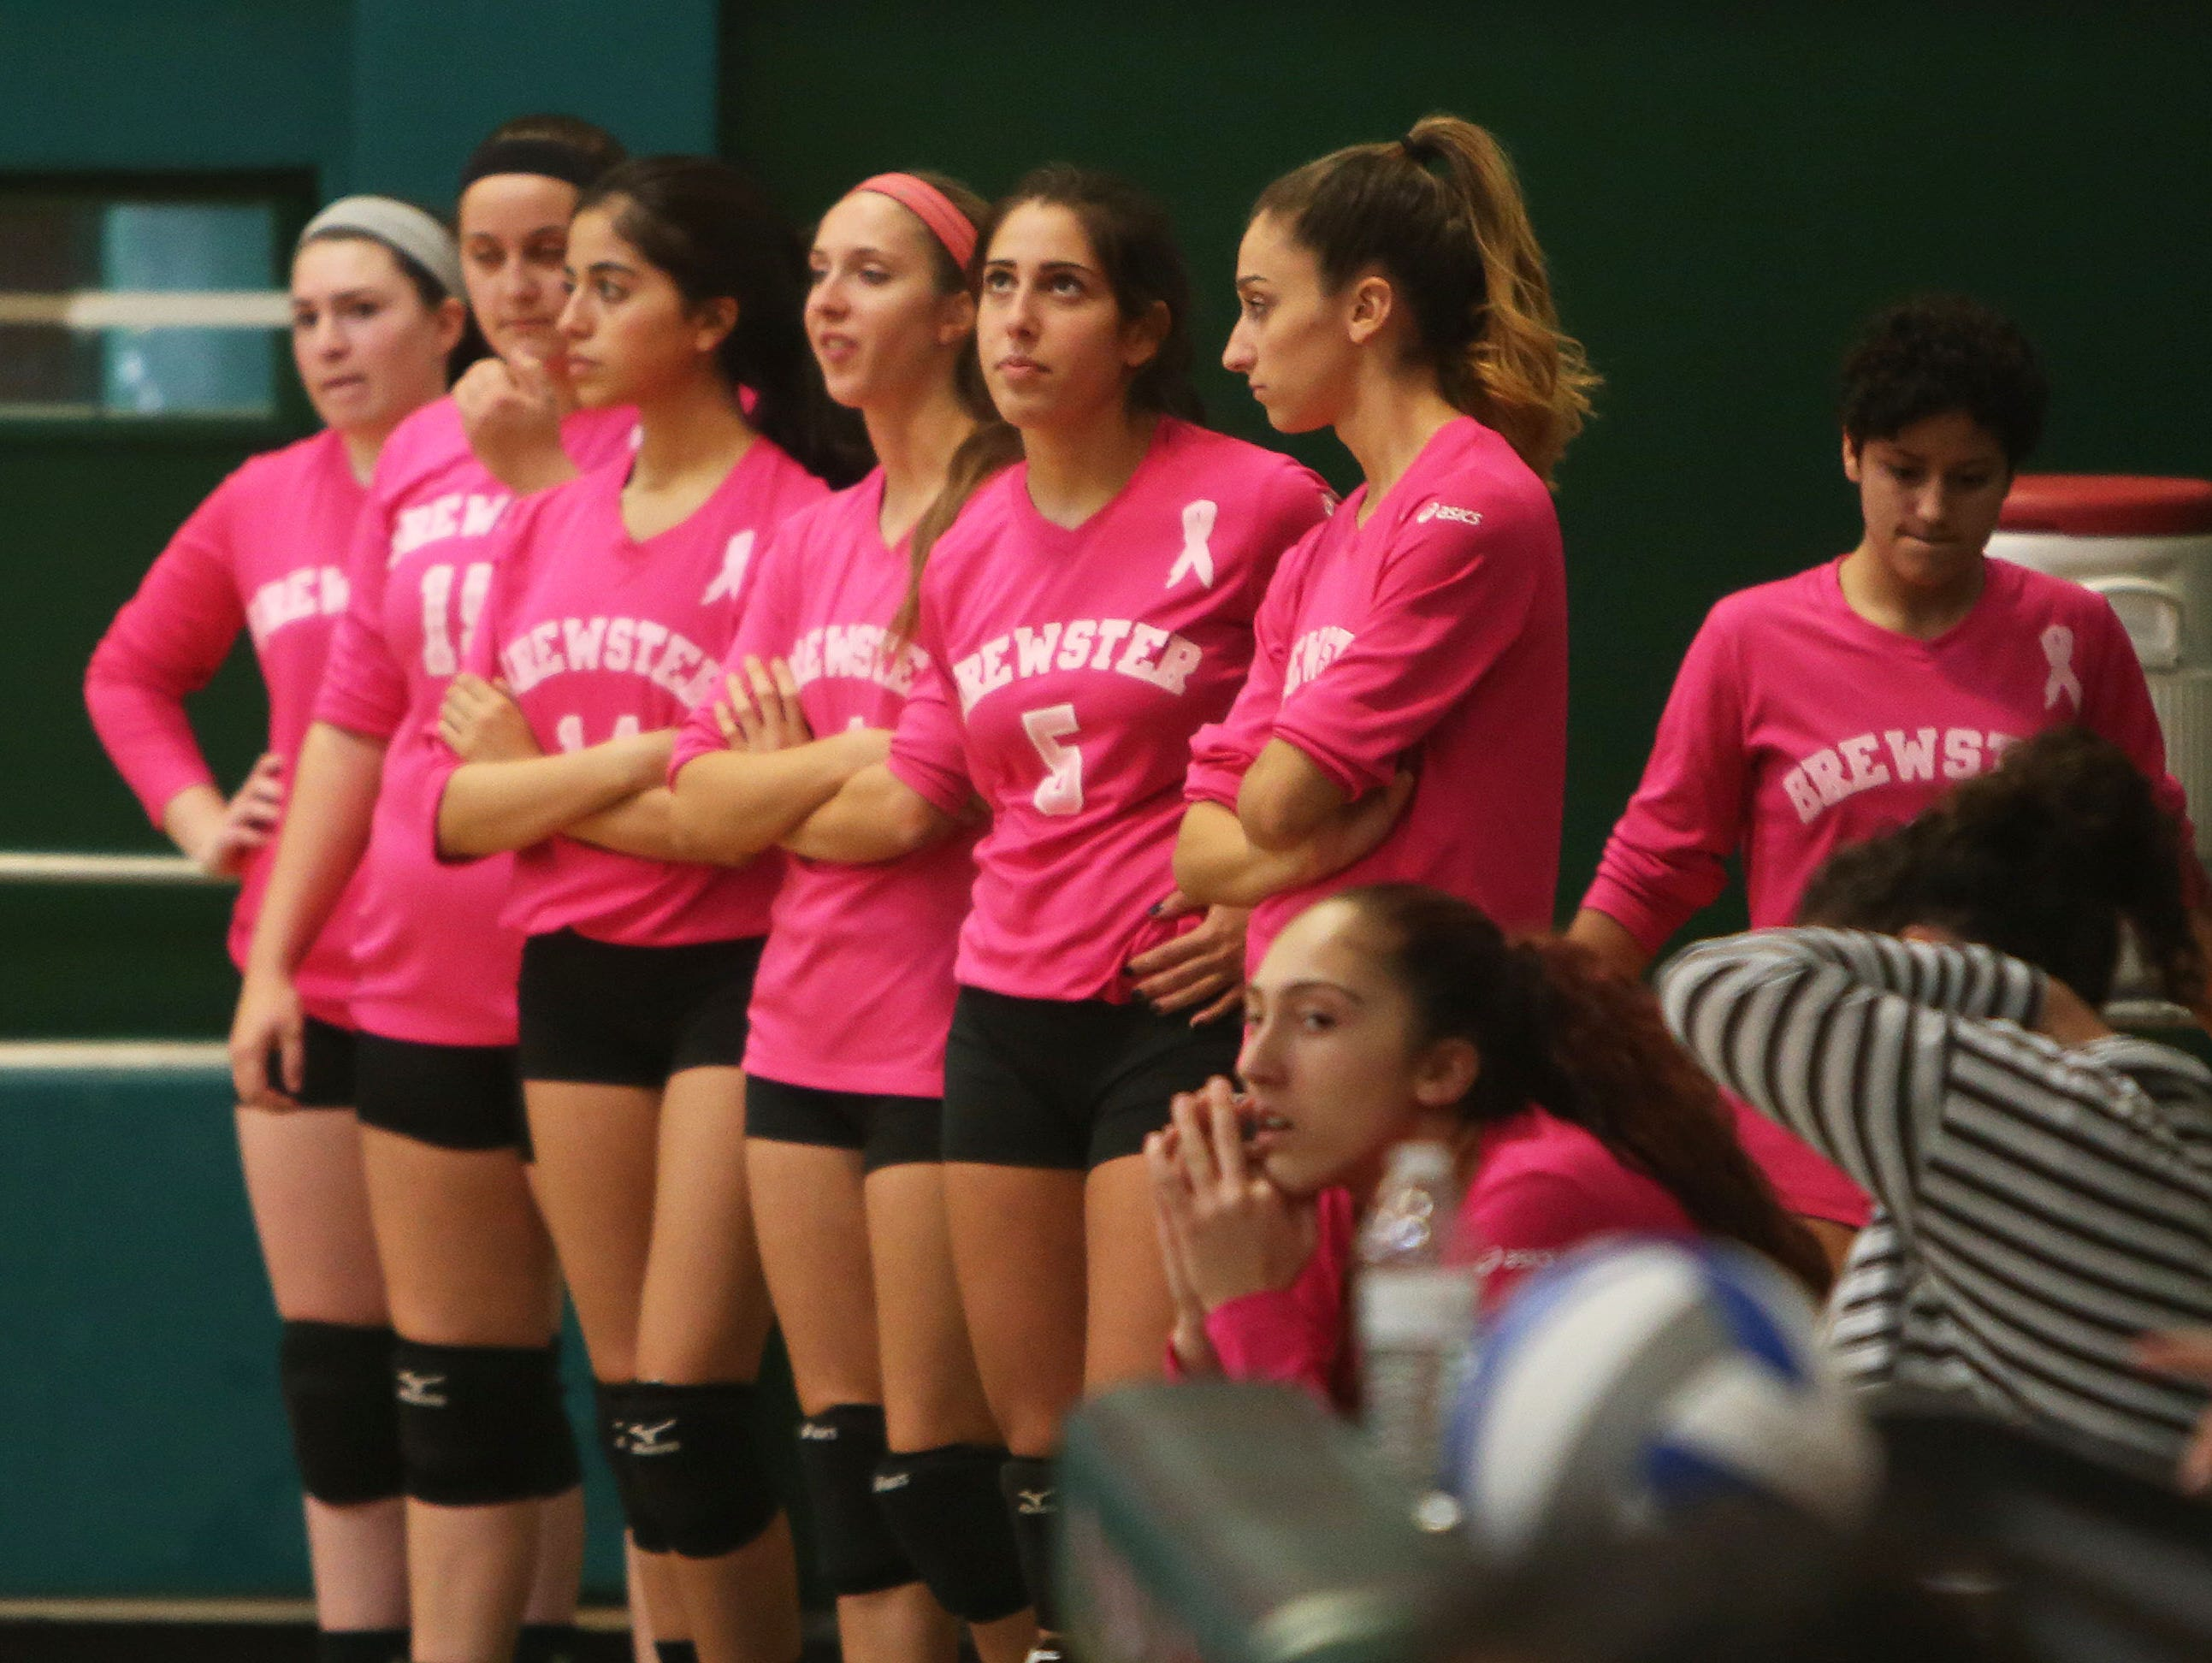 Fox Lane swept Brewster 25-23, 25-23, and 25-16 in volleyball action at Brewster High School Oct. 22, 2015.